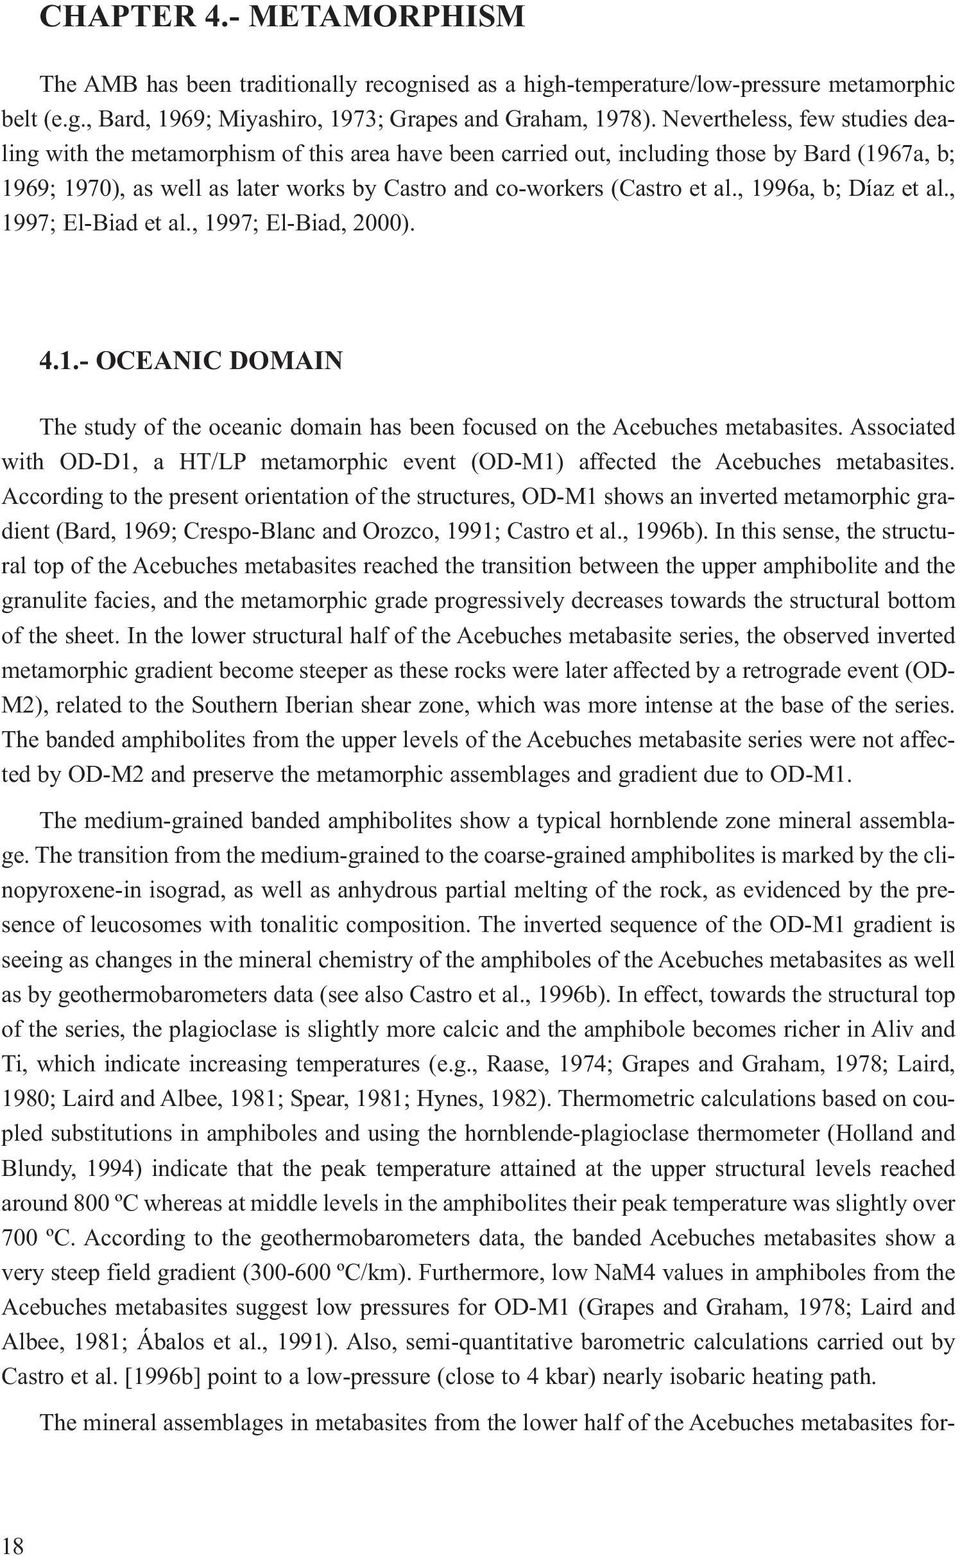 al., 1996a, b; Díaz et al., 1997; El-Biad et al., 1997; El-Biad, 2000). 4.1.- OCEANIC DOMAIN The study of the oceanic domain has been focused on the Acebuches metabasites.